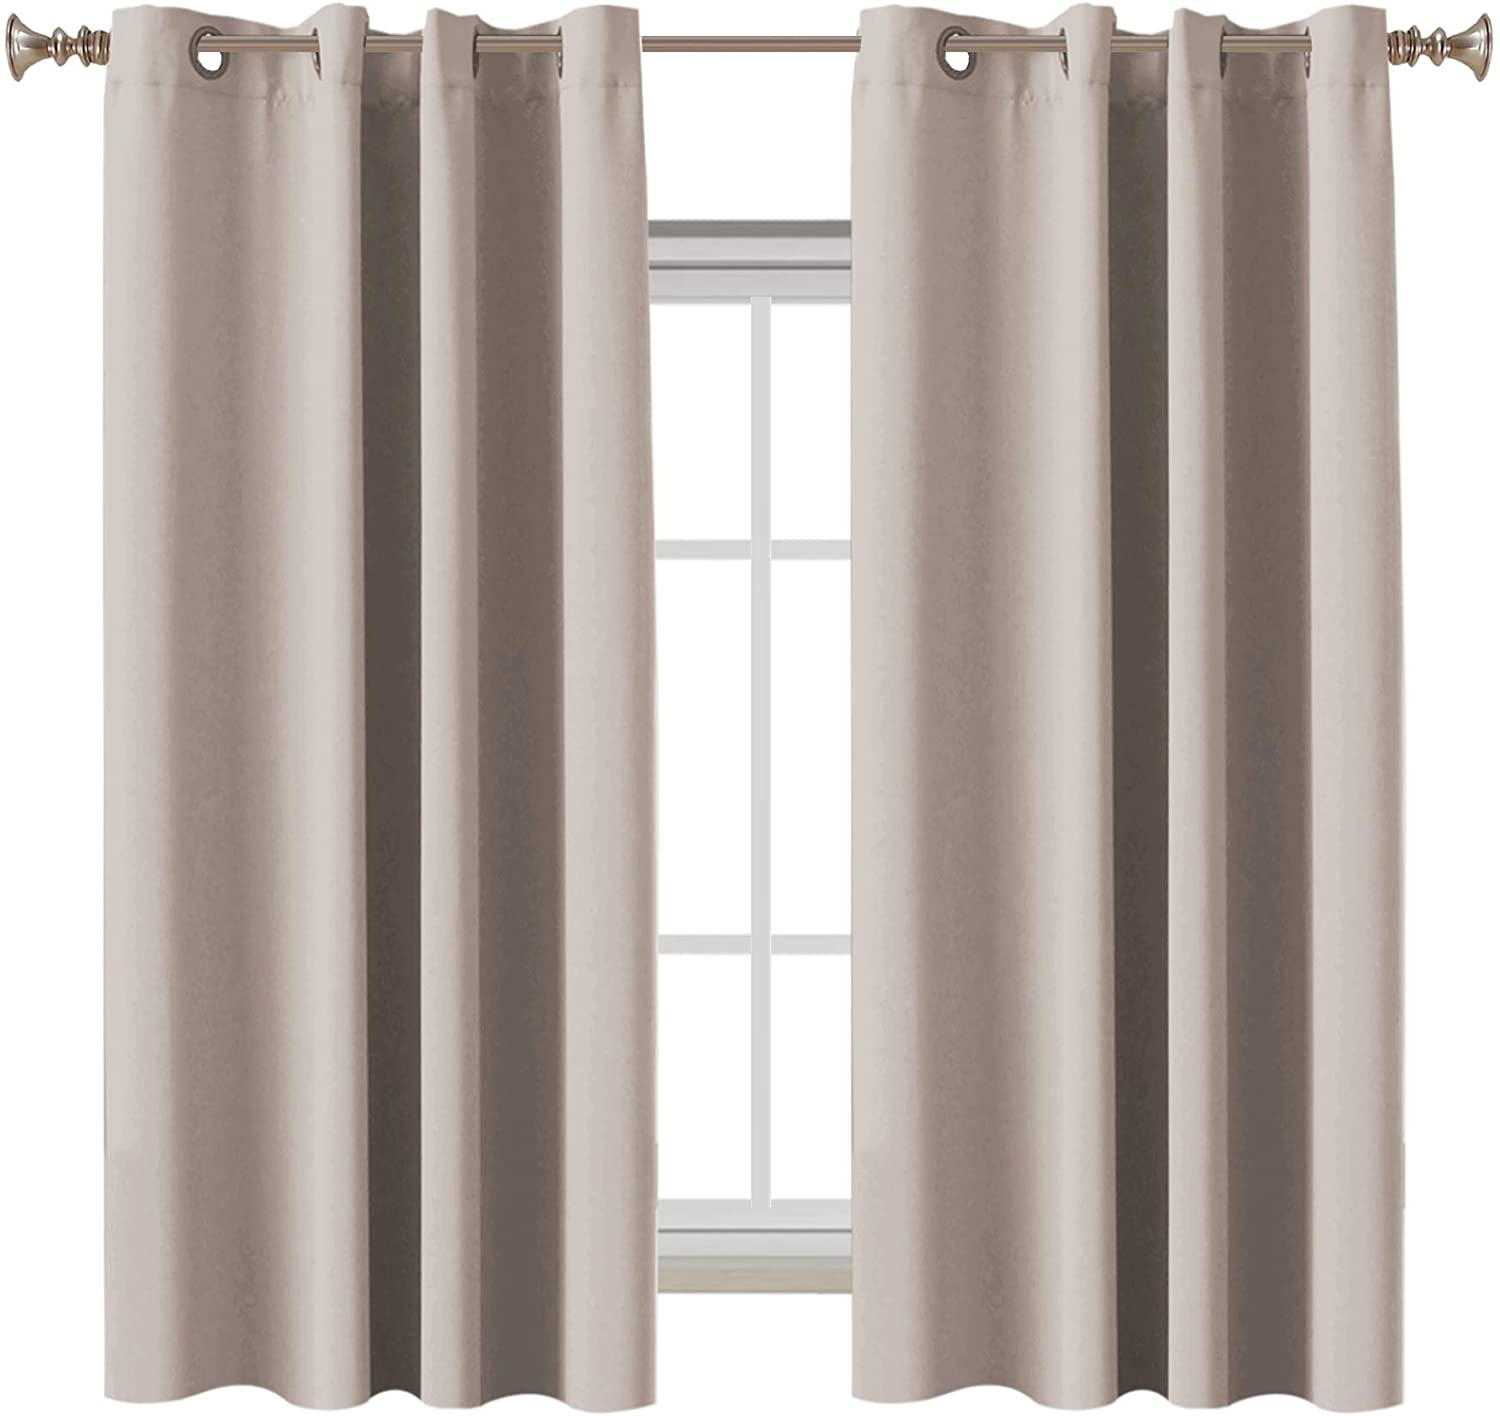 Blackout Curtains Three Pass Microfiber Noise Reducing 63 Inch Length Room Darkening Drapes for Bedroom, Energy Saving Window Treatment Panels for Living Room, Natural, 2 Panel, 52 by 63 Inch